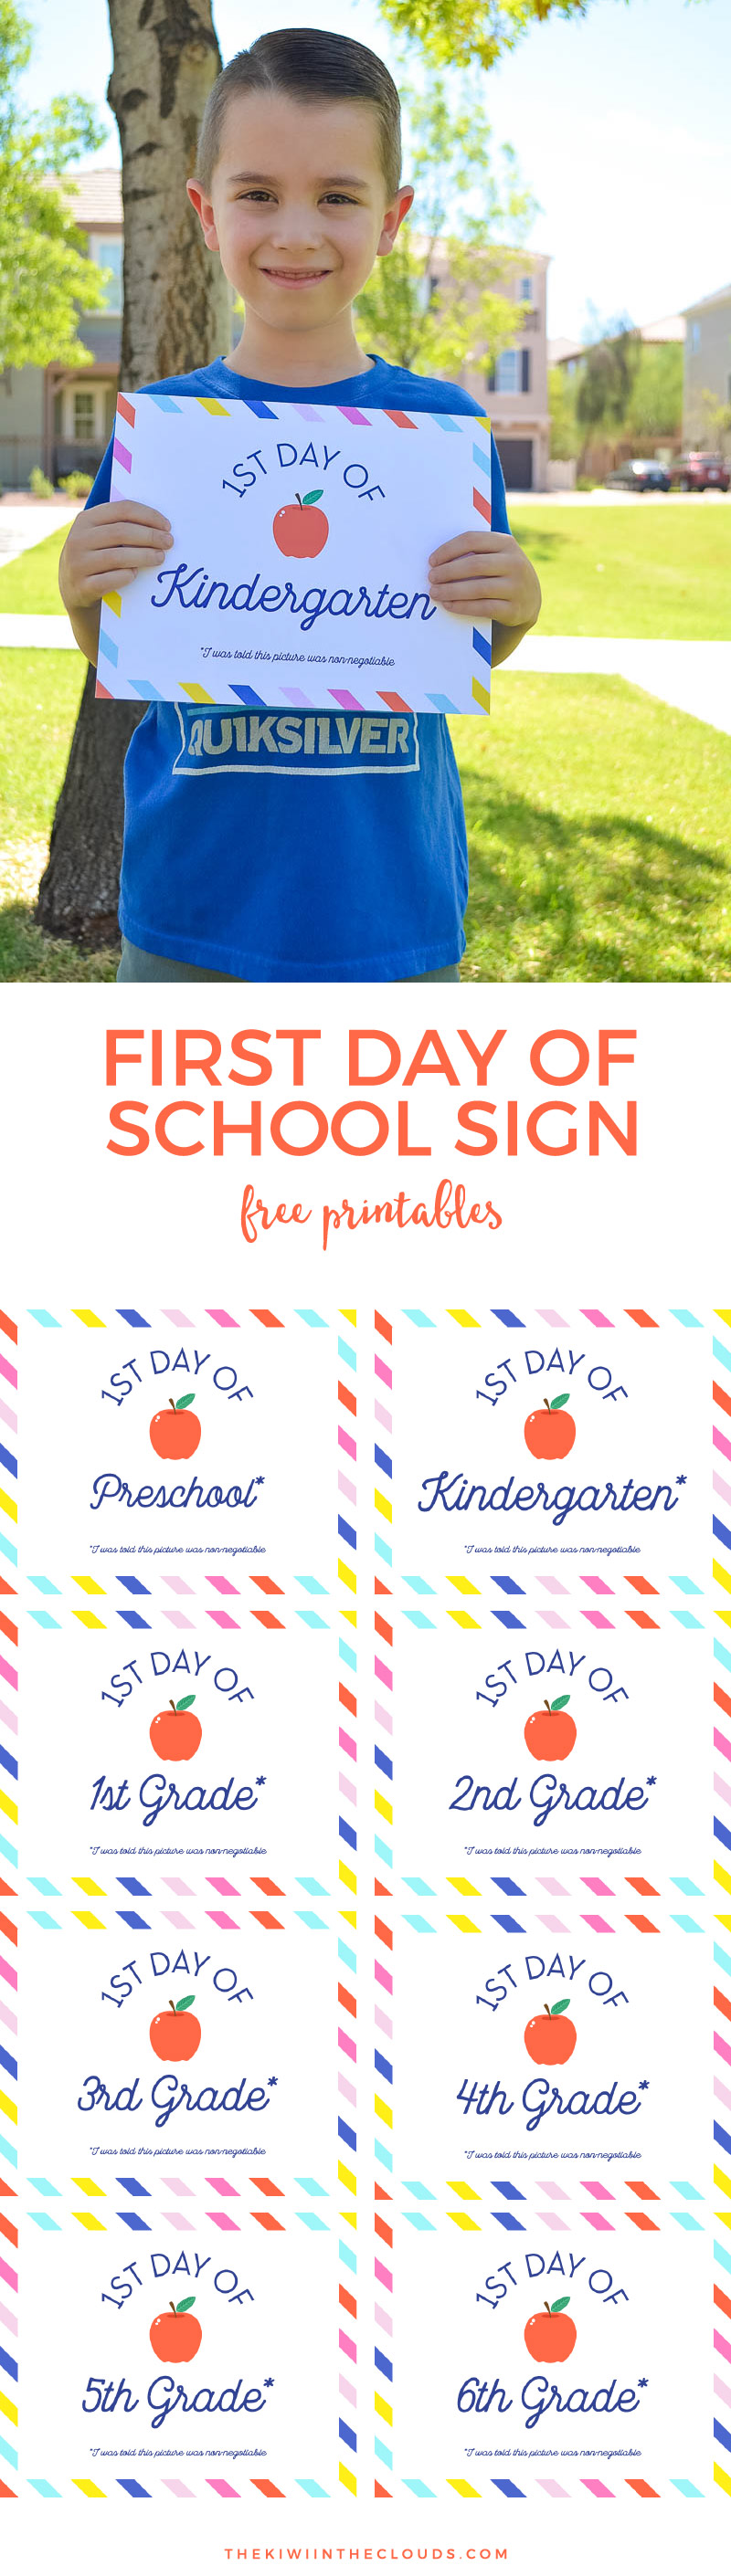 Document your child's new school year with these first day of school signs free printables from preschool to 6th grade. There's a plain option or one with a slightly sarcastic disclaimer attached. Click through to download now!